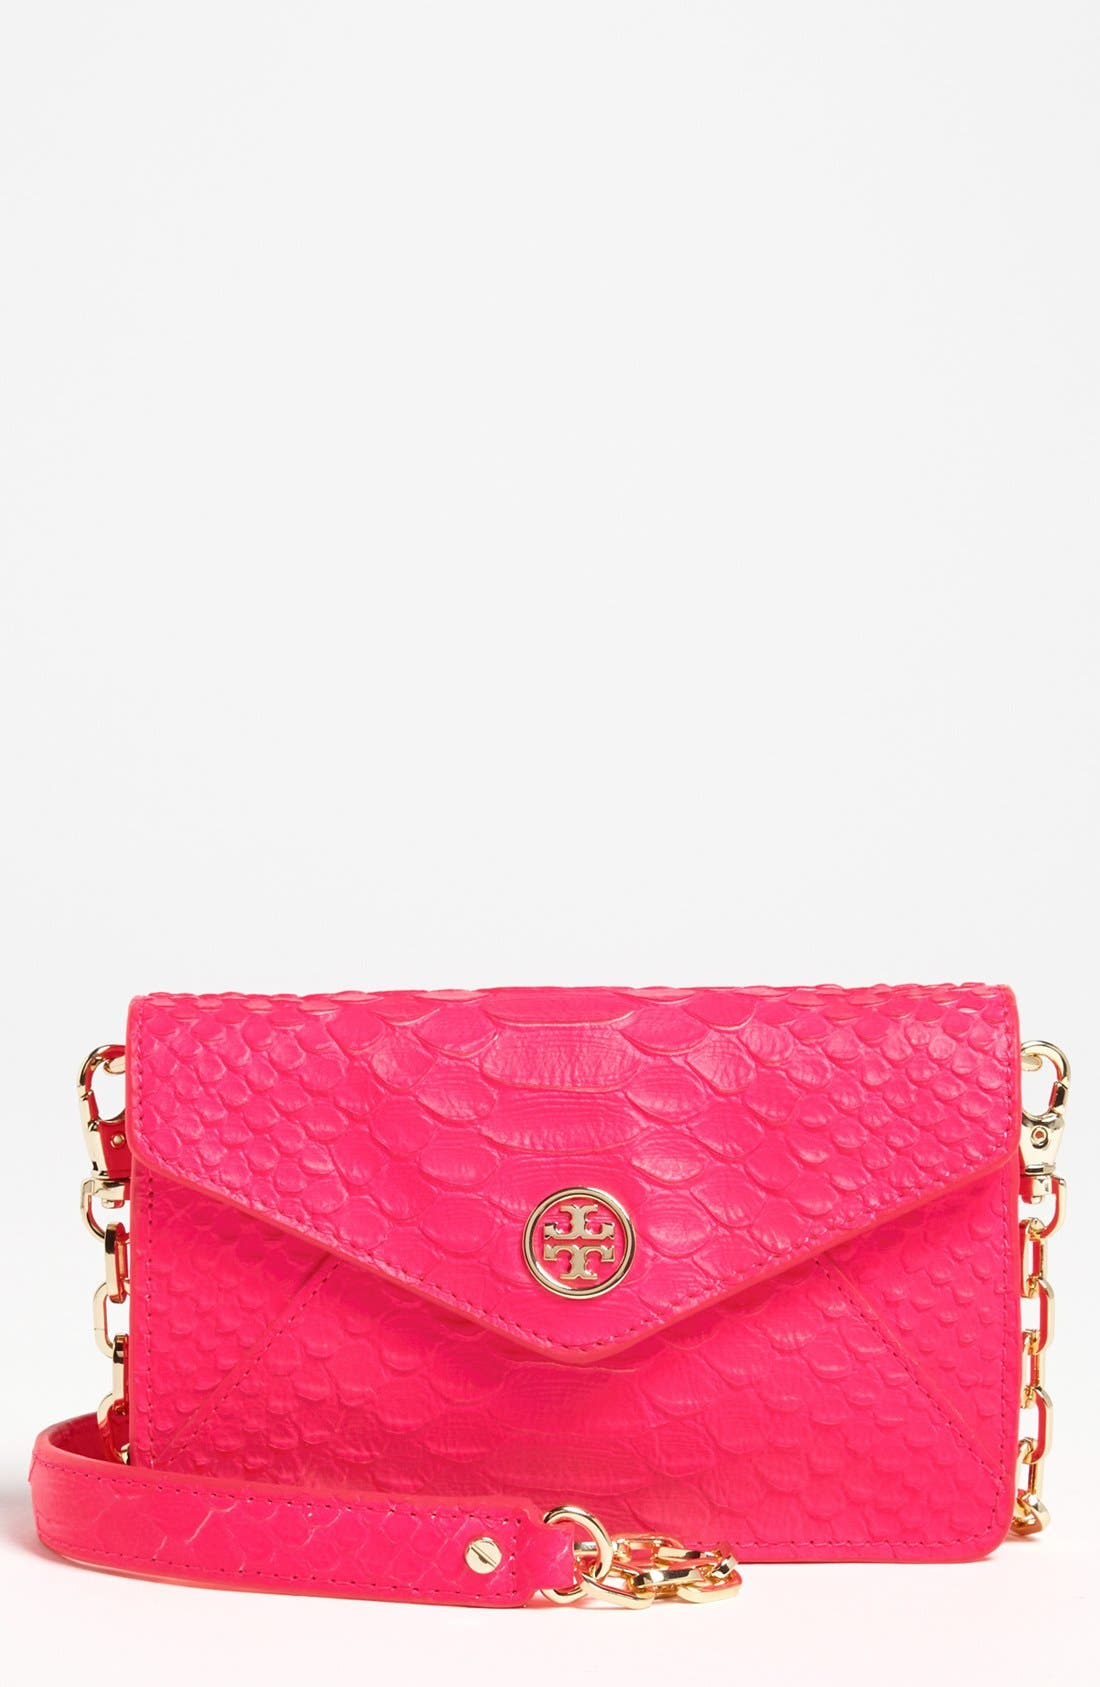 TORY BURCH 'Neon Snake' Crossbody Bag, Main, color, 658